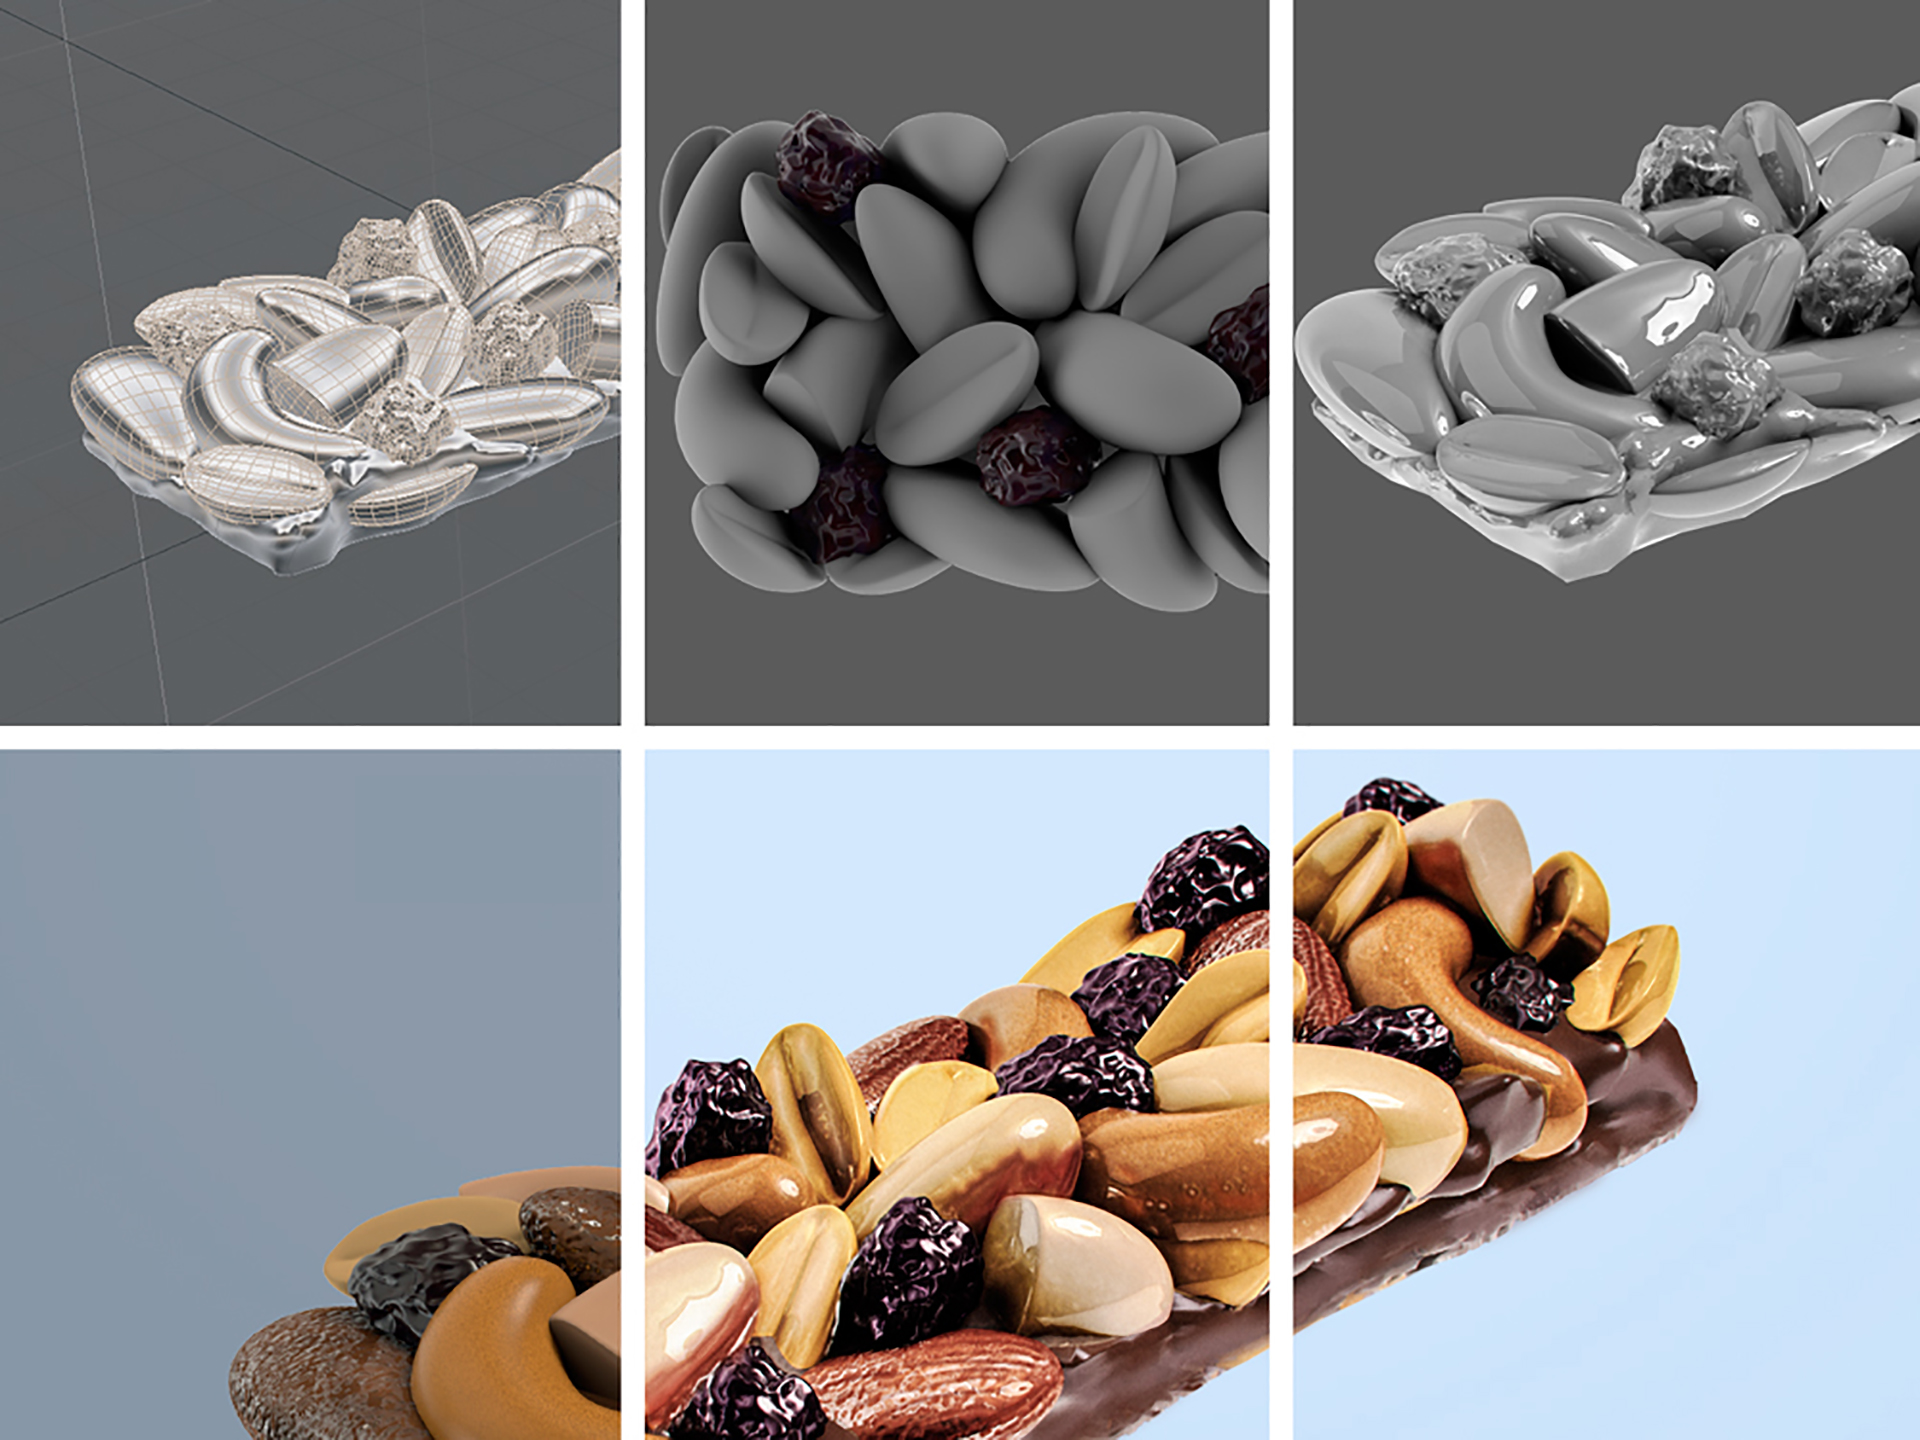 cg illustrated 3d chocolate biscuits and fruit bars 3d rendered in corona, very